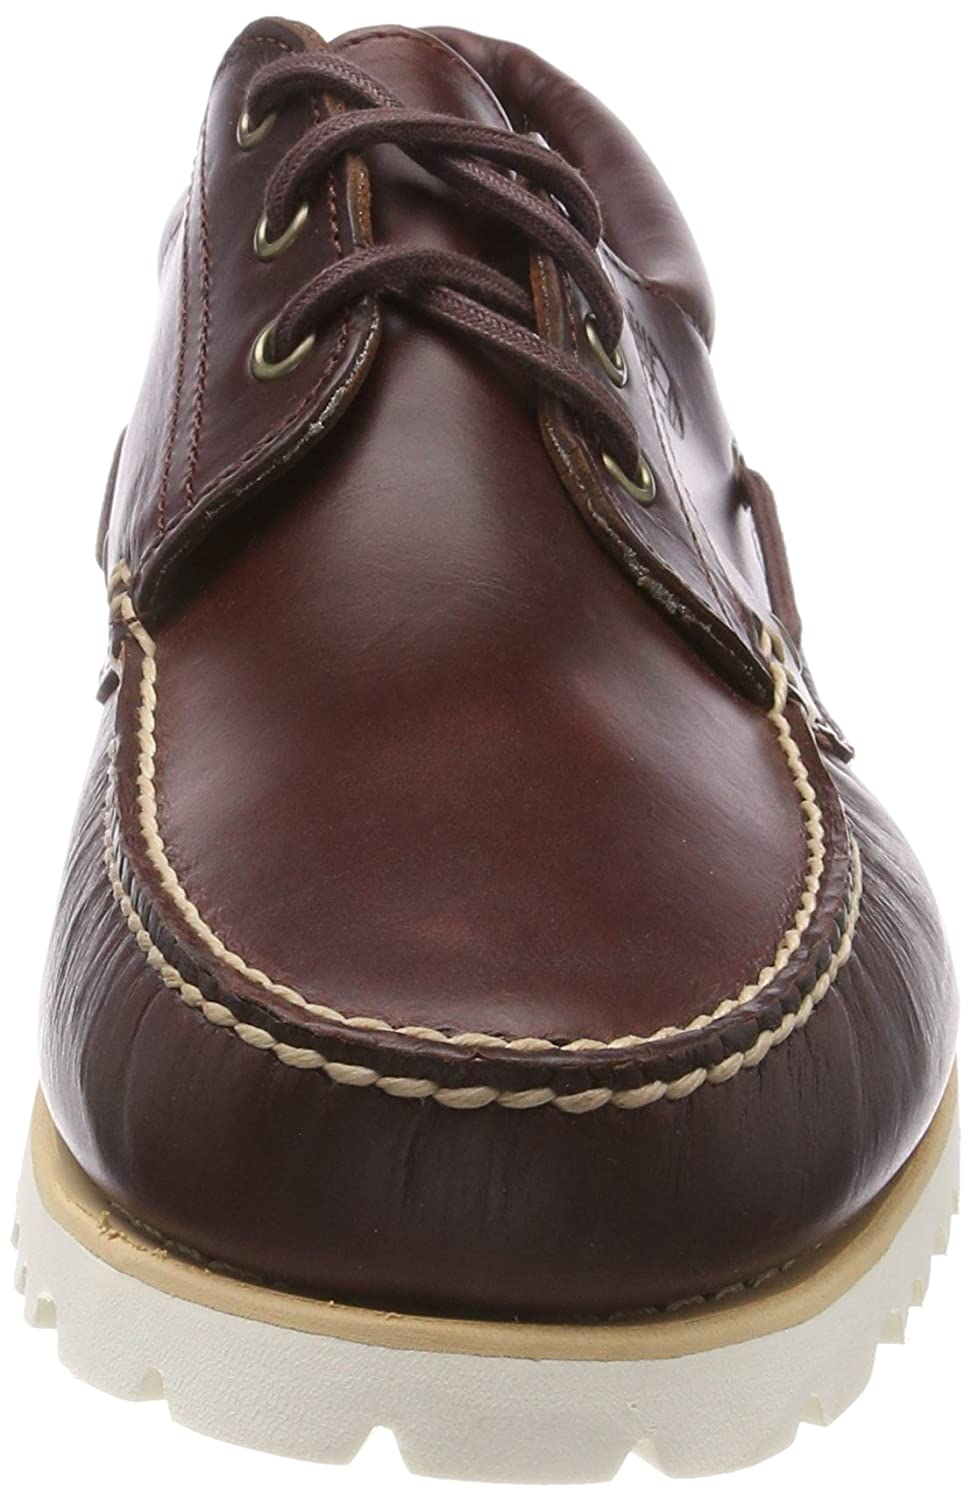 Amazon.com | Timberland Mens Chilmark 3 Eye Hands Leather Boat Shoes, Brown | Oxfords